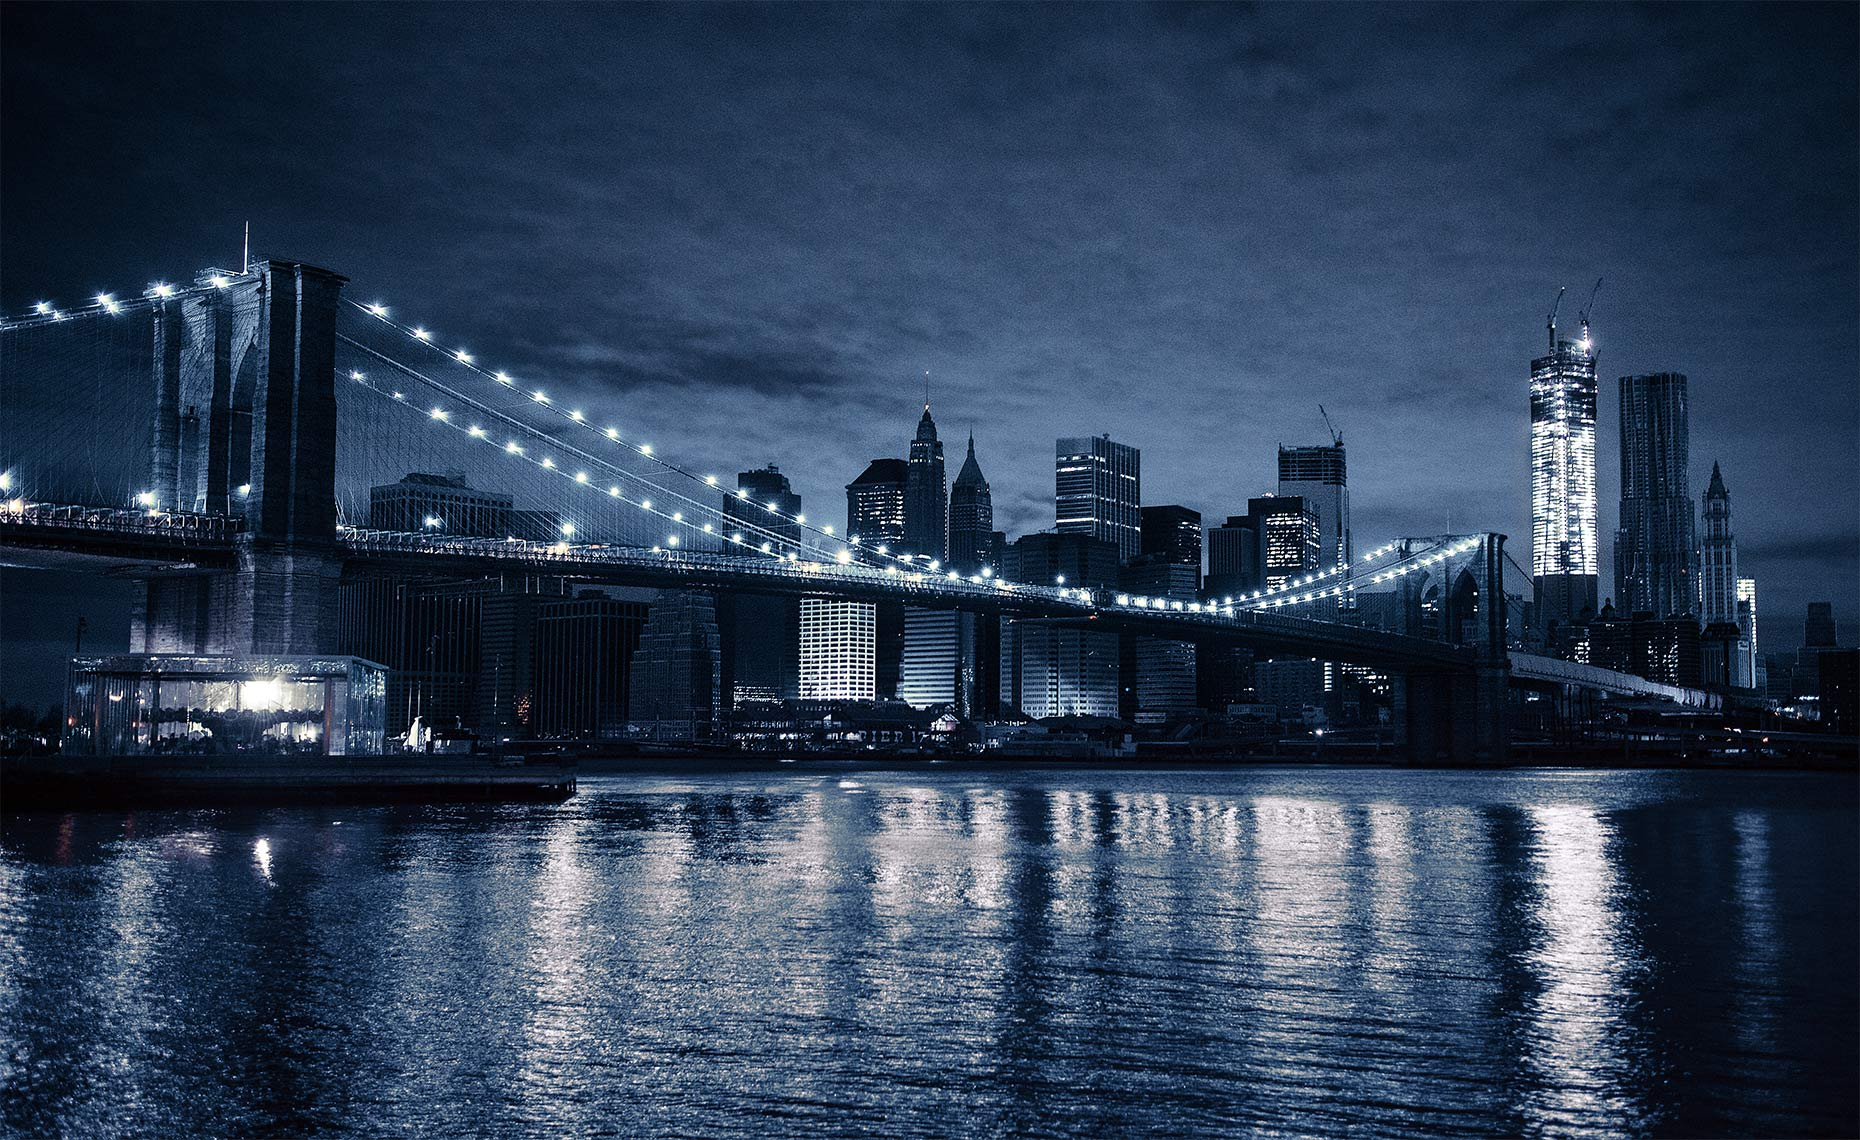 Brooklyn Bridge Hurricane Sandy Blackout, New York City